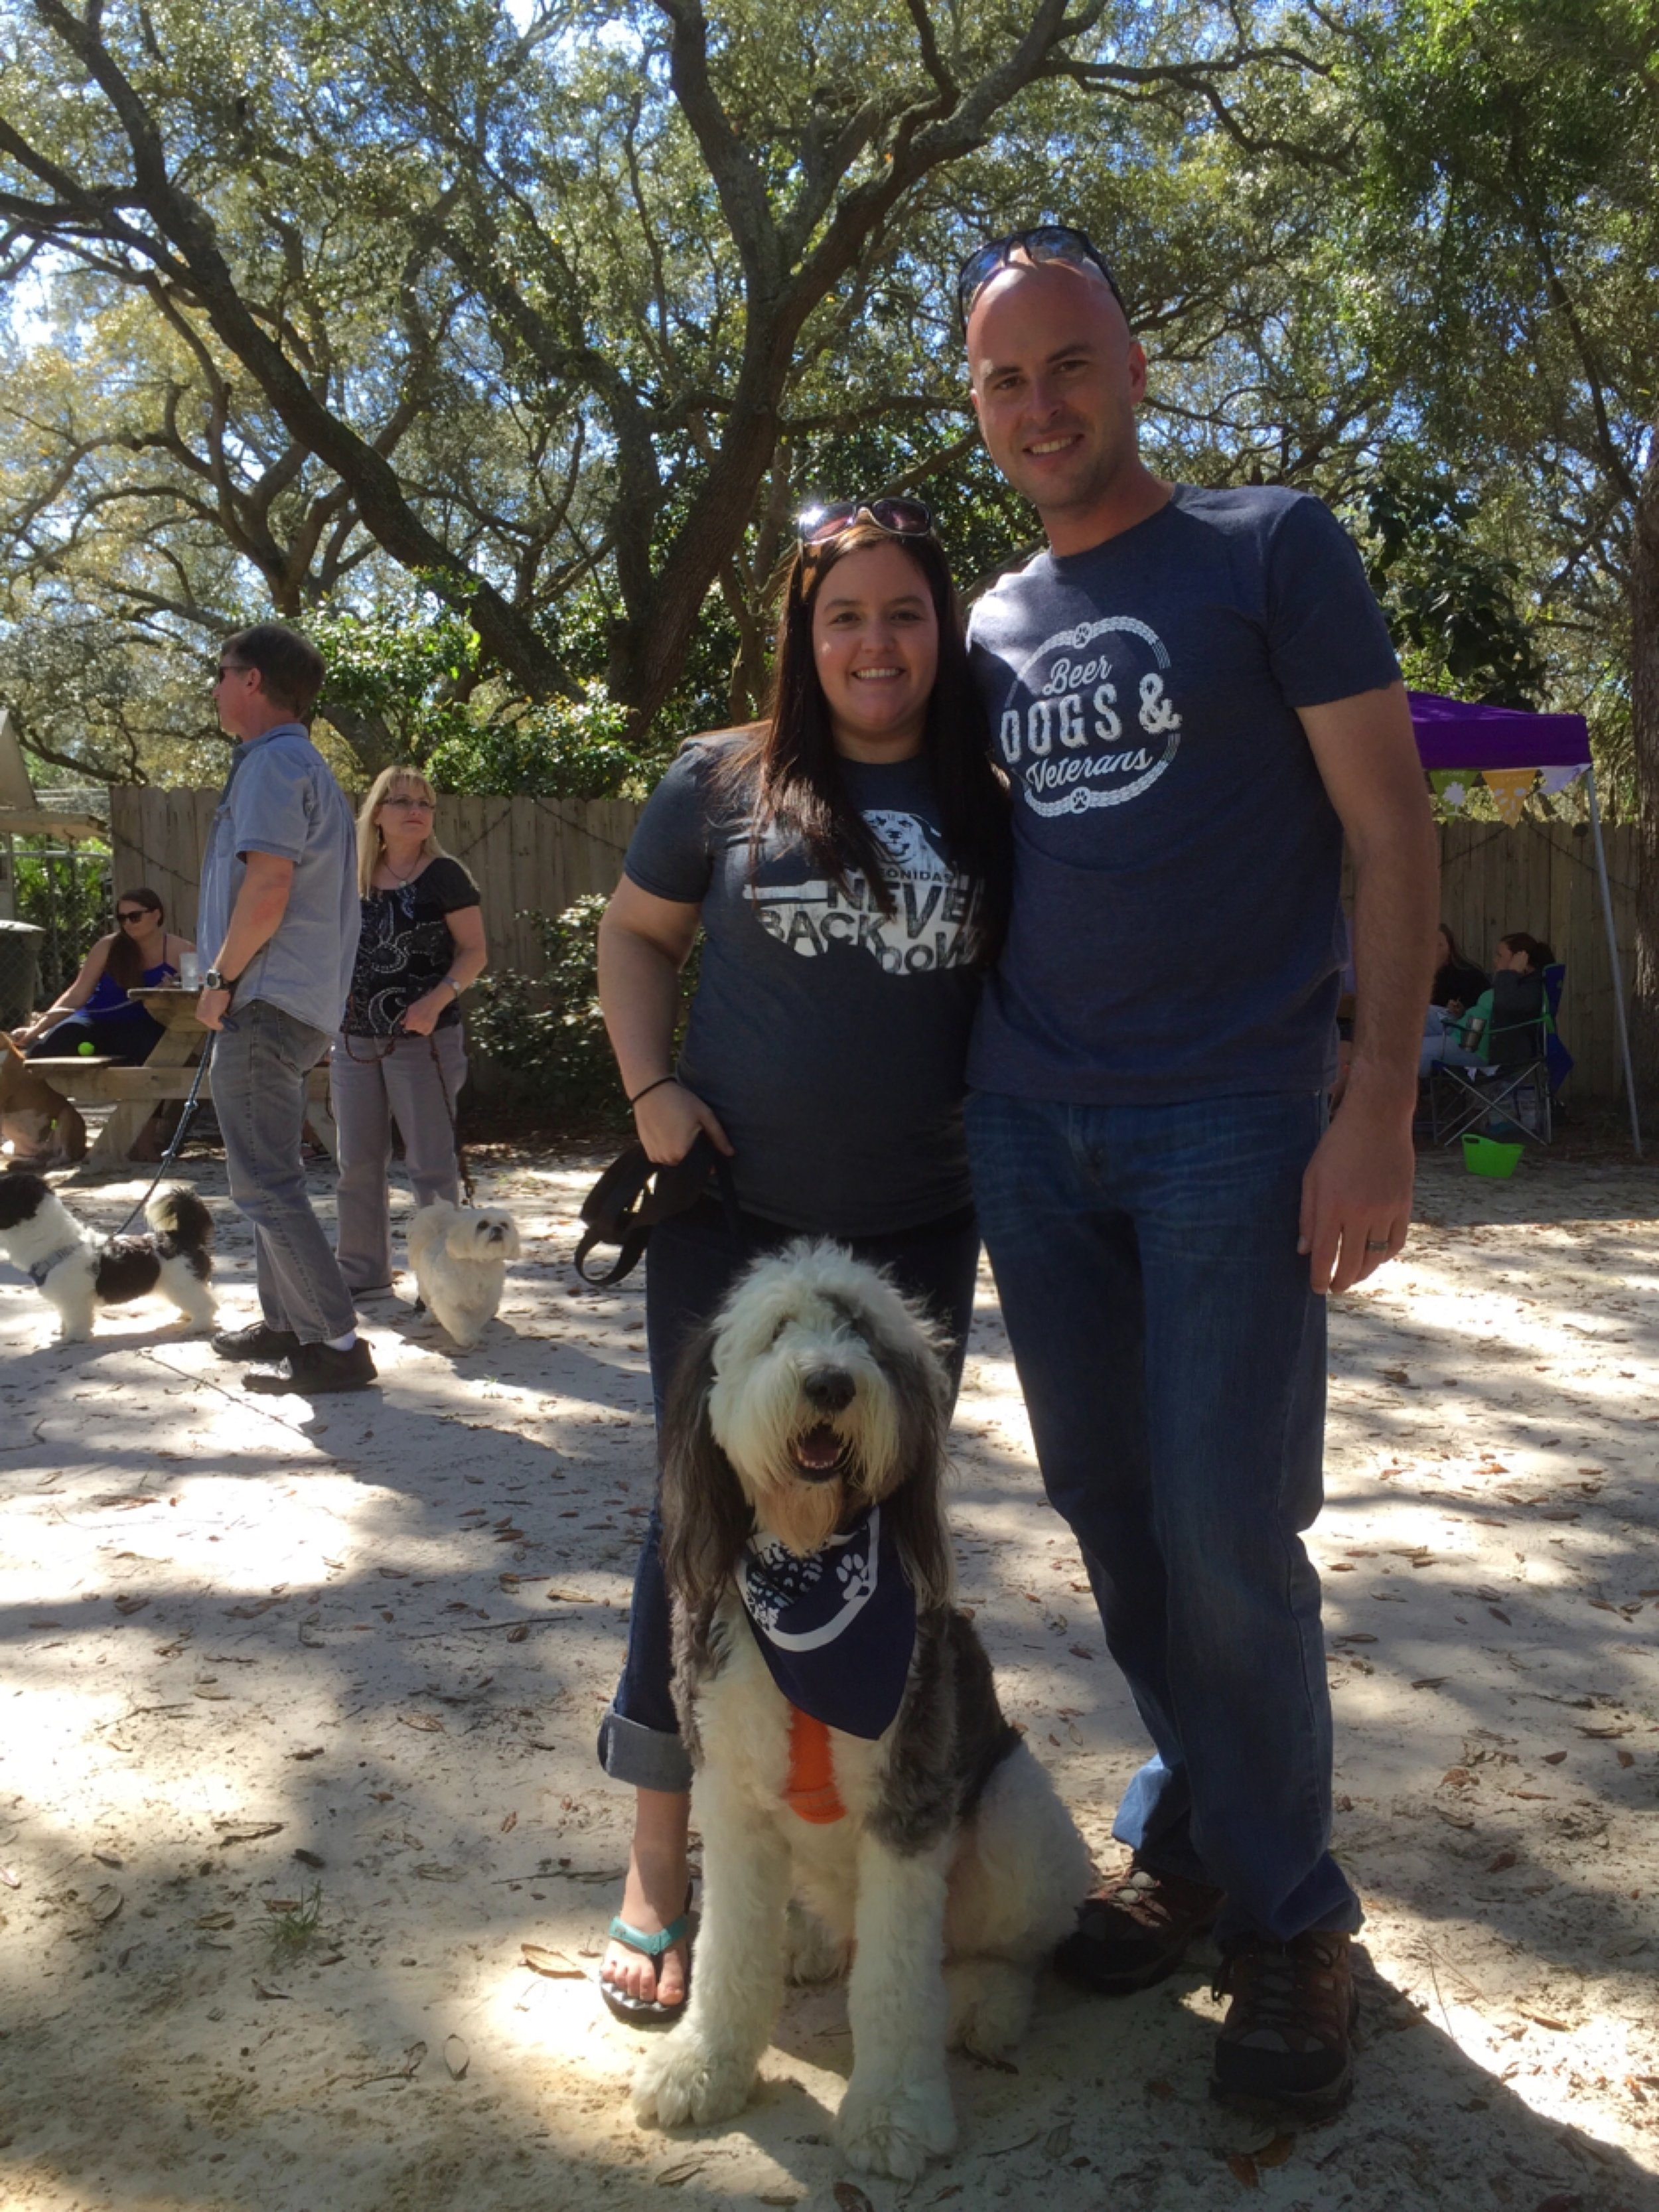 Allison Mercer '07, executive director for Dogs on Deployment, attending a fundraiser with husband, Joe, and their pup, Ted.